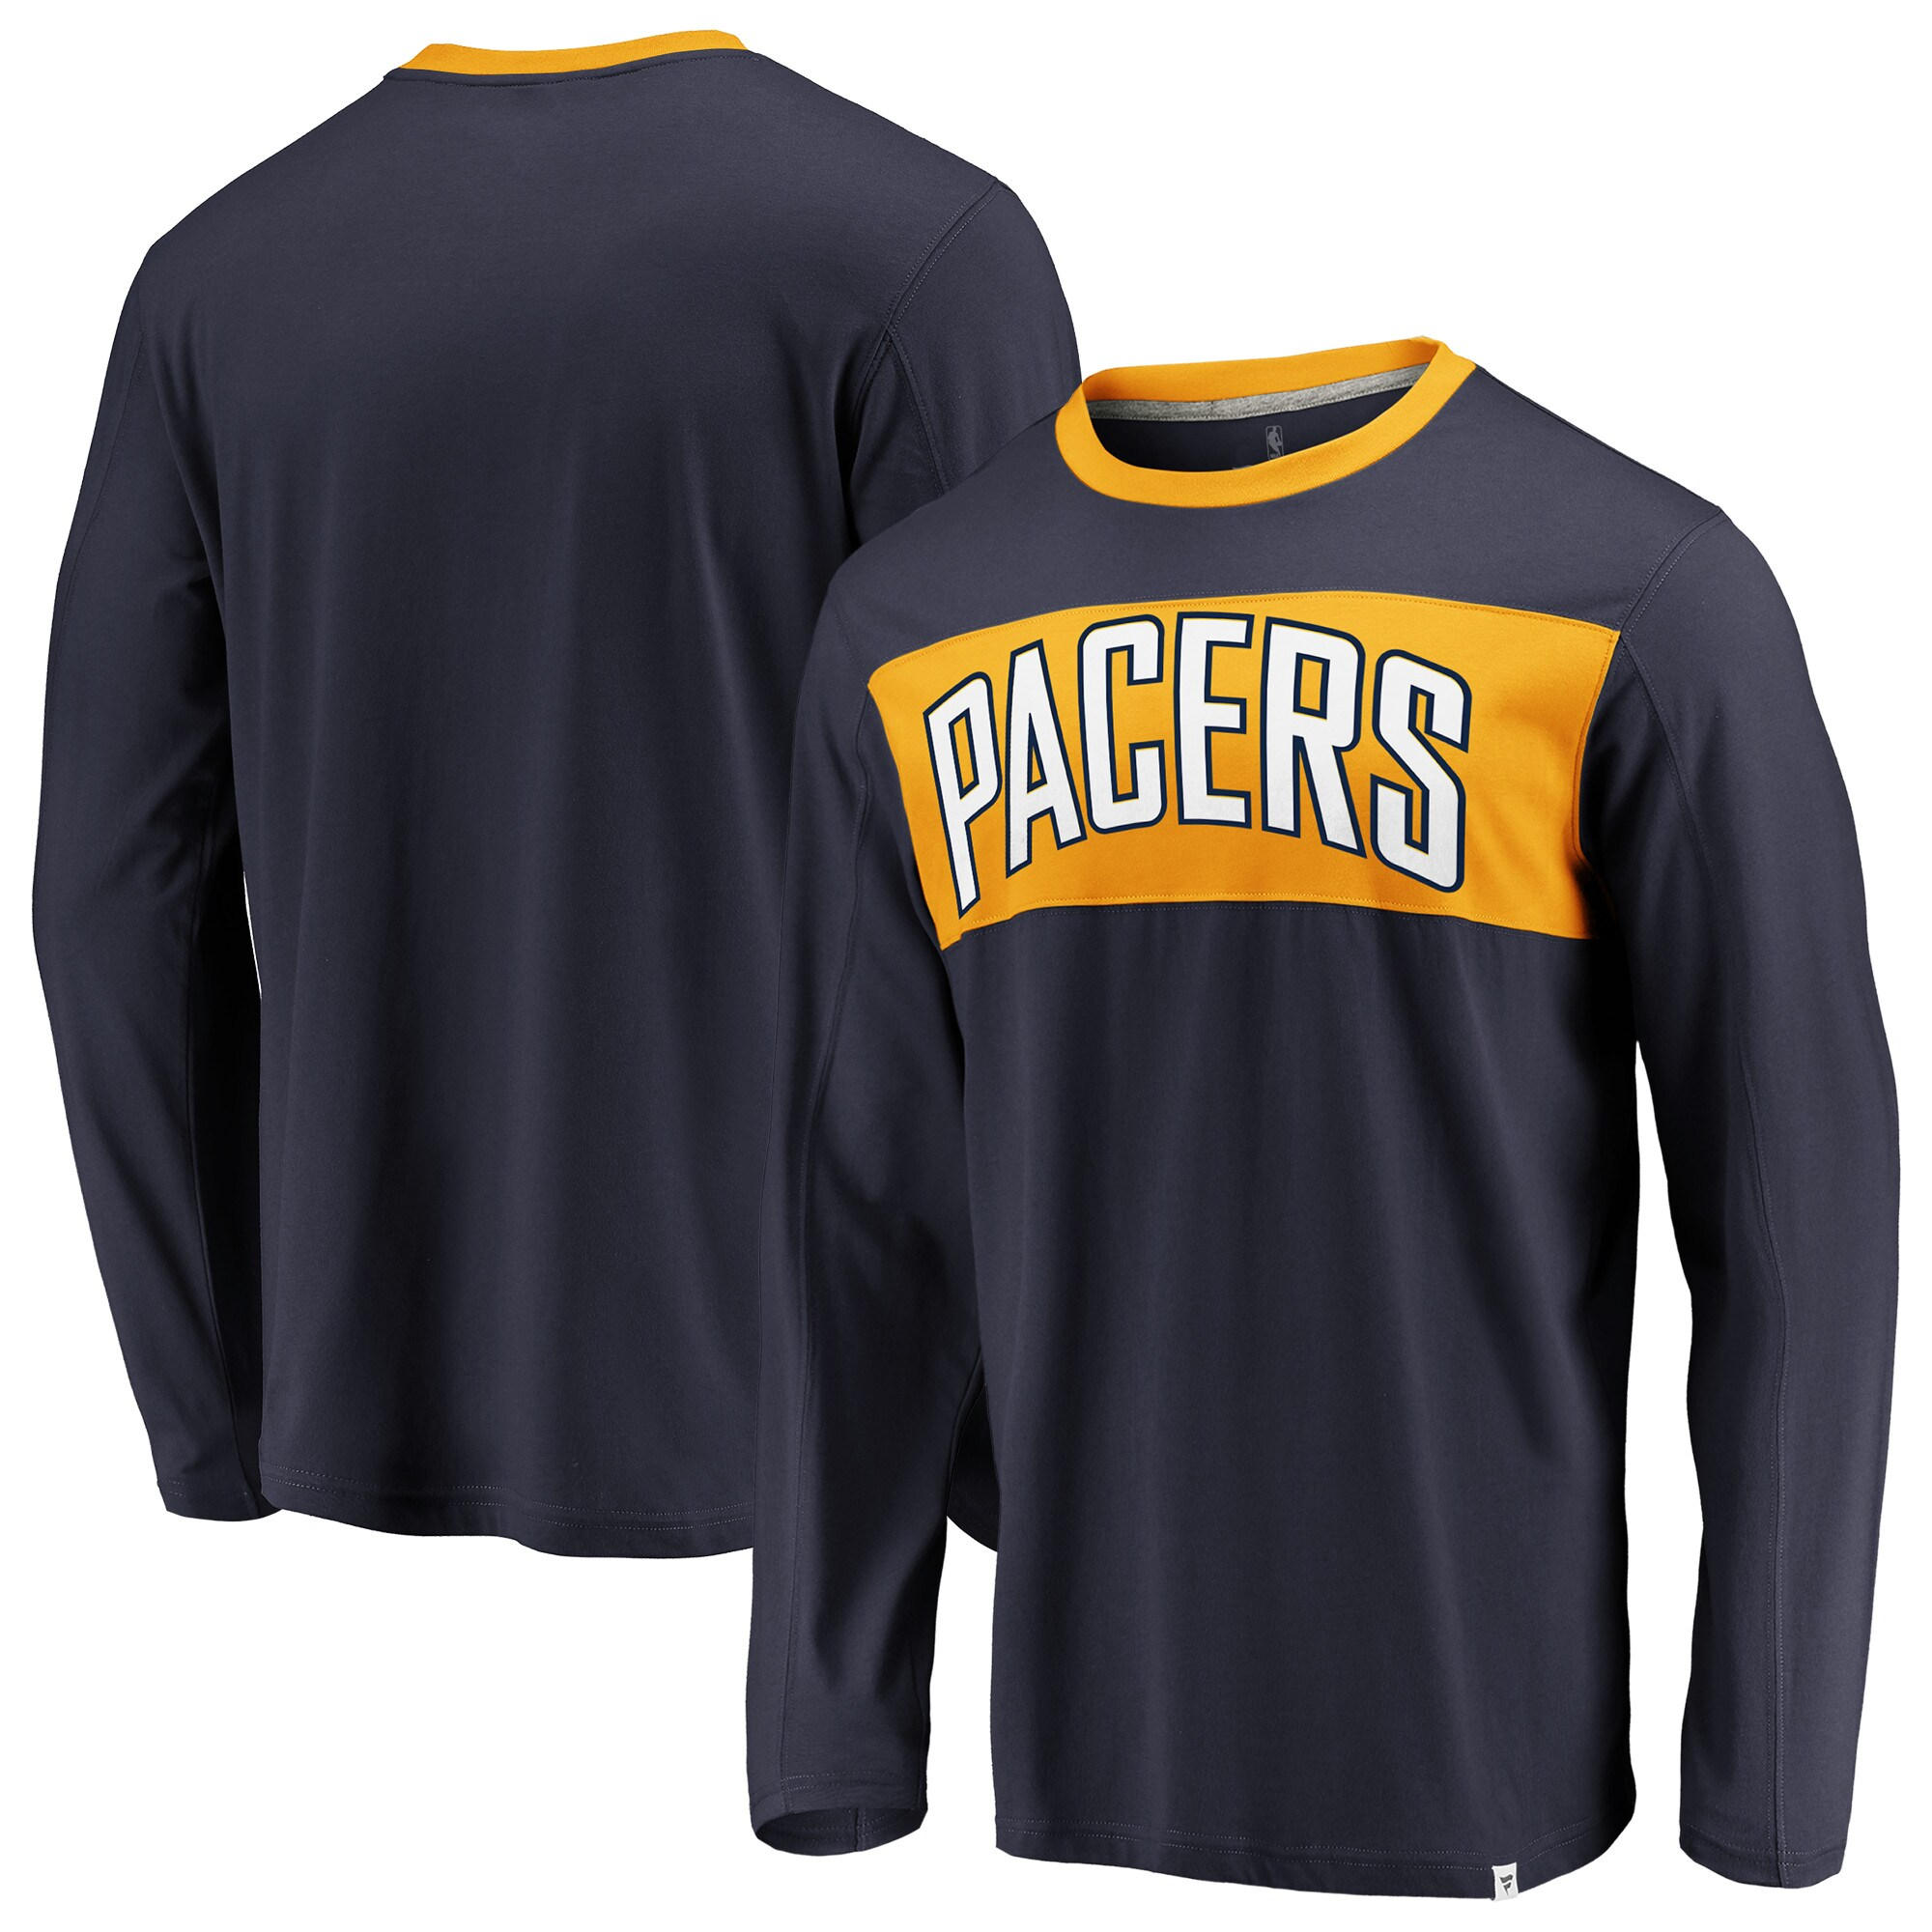 Indiana Pacers Fanatics Branded Iconic Color Block Long Sleeve T-Shirt - Navy/Gold